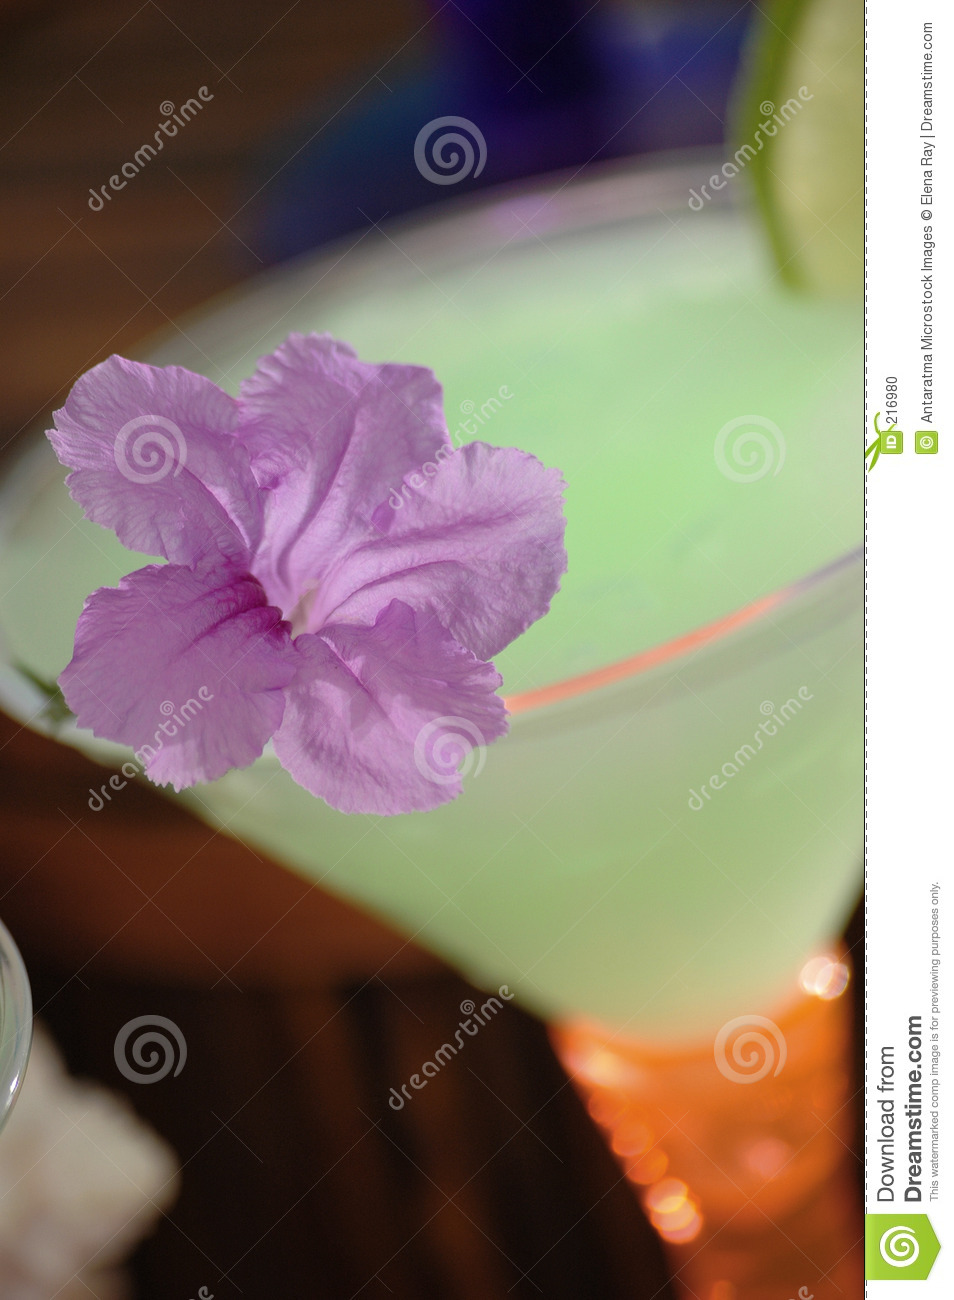 Download Cocktail tropicale 2 fotografia stock. Immagine di viola - 216980